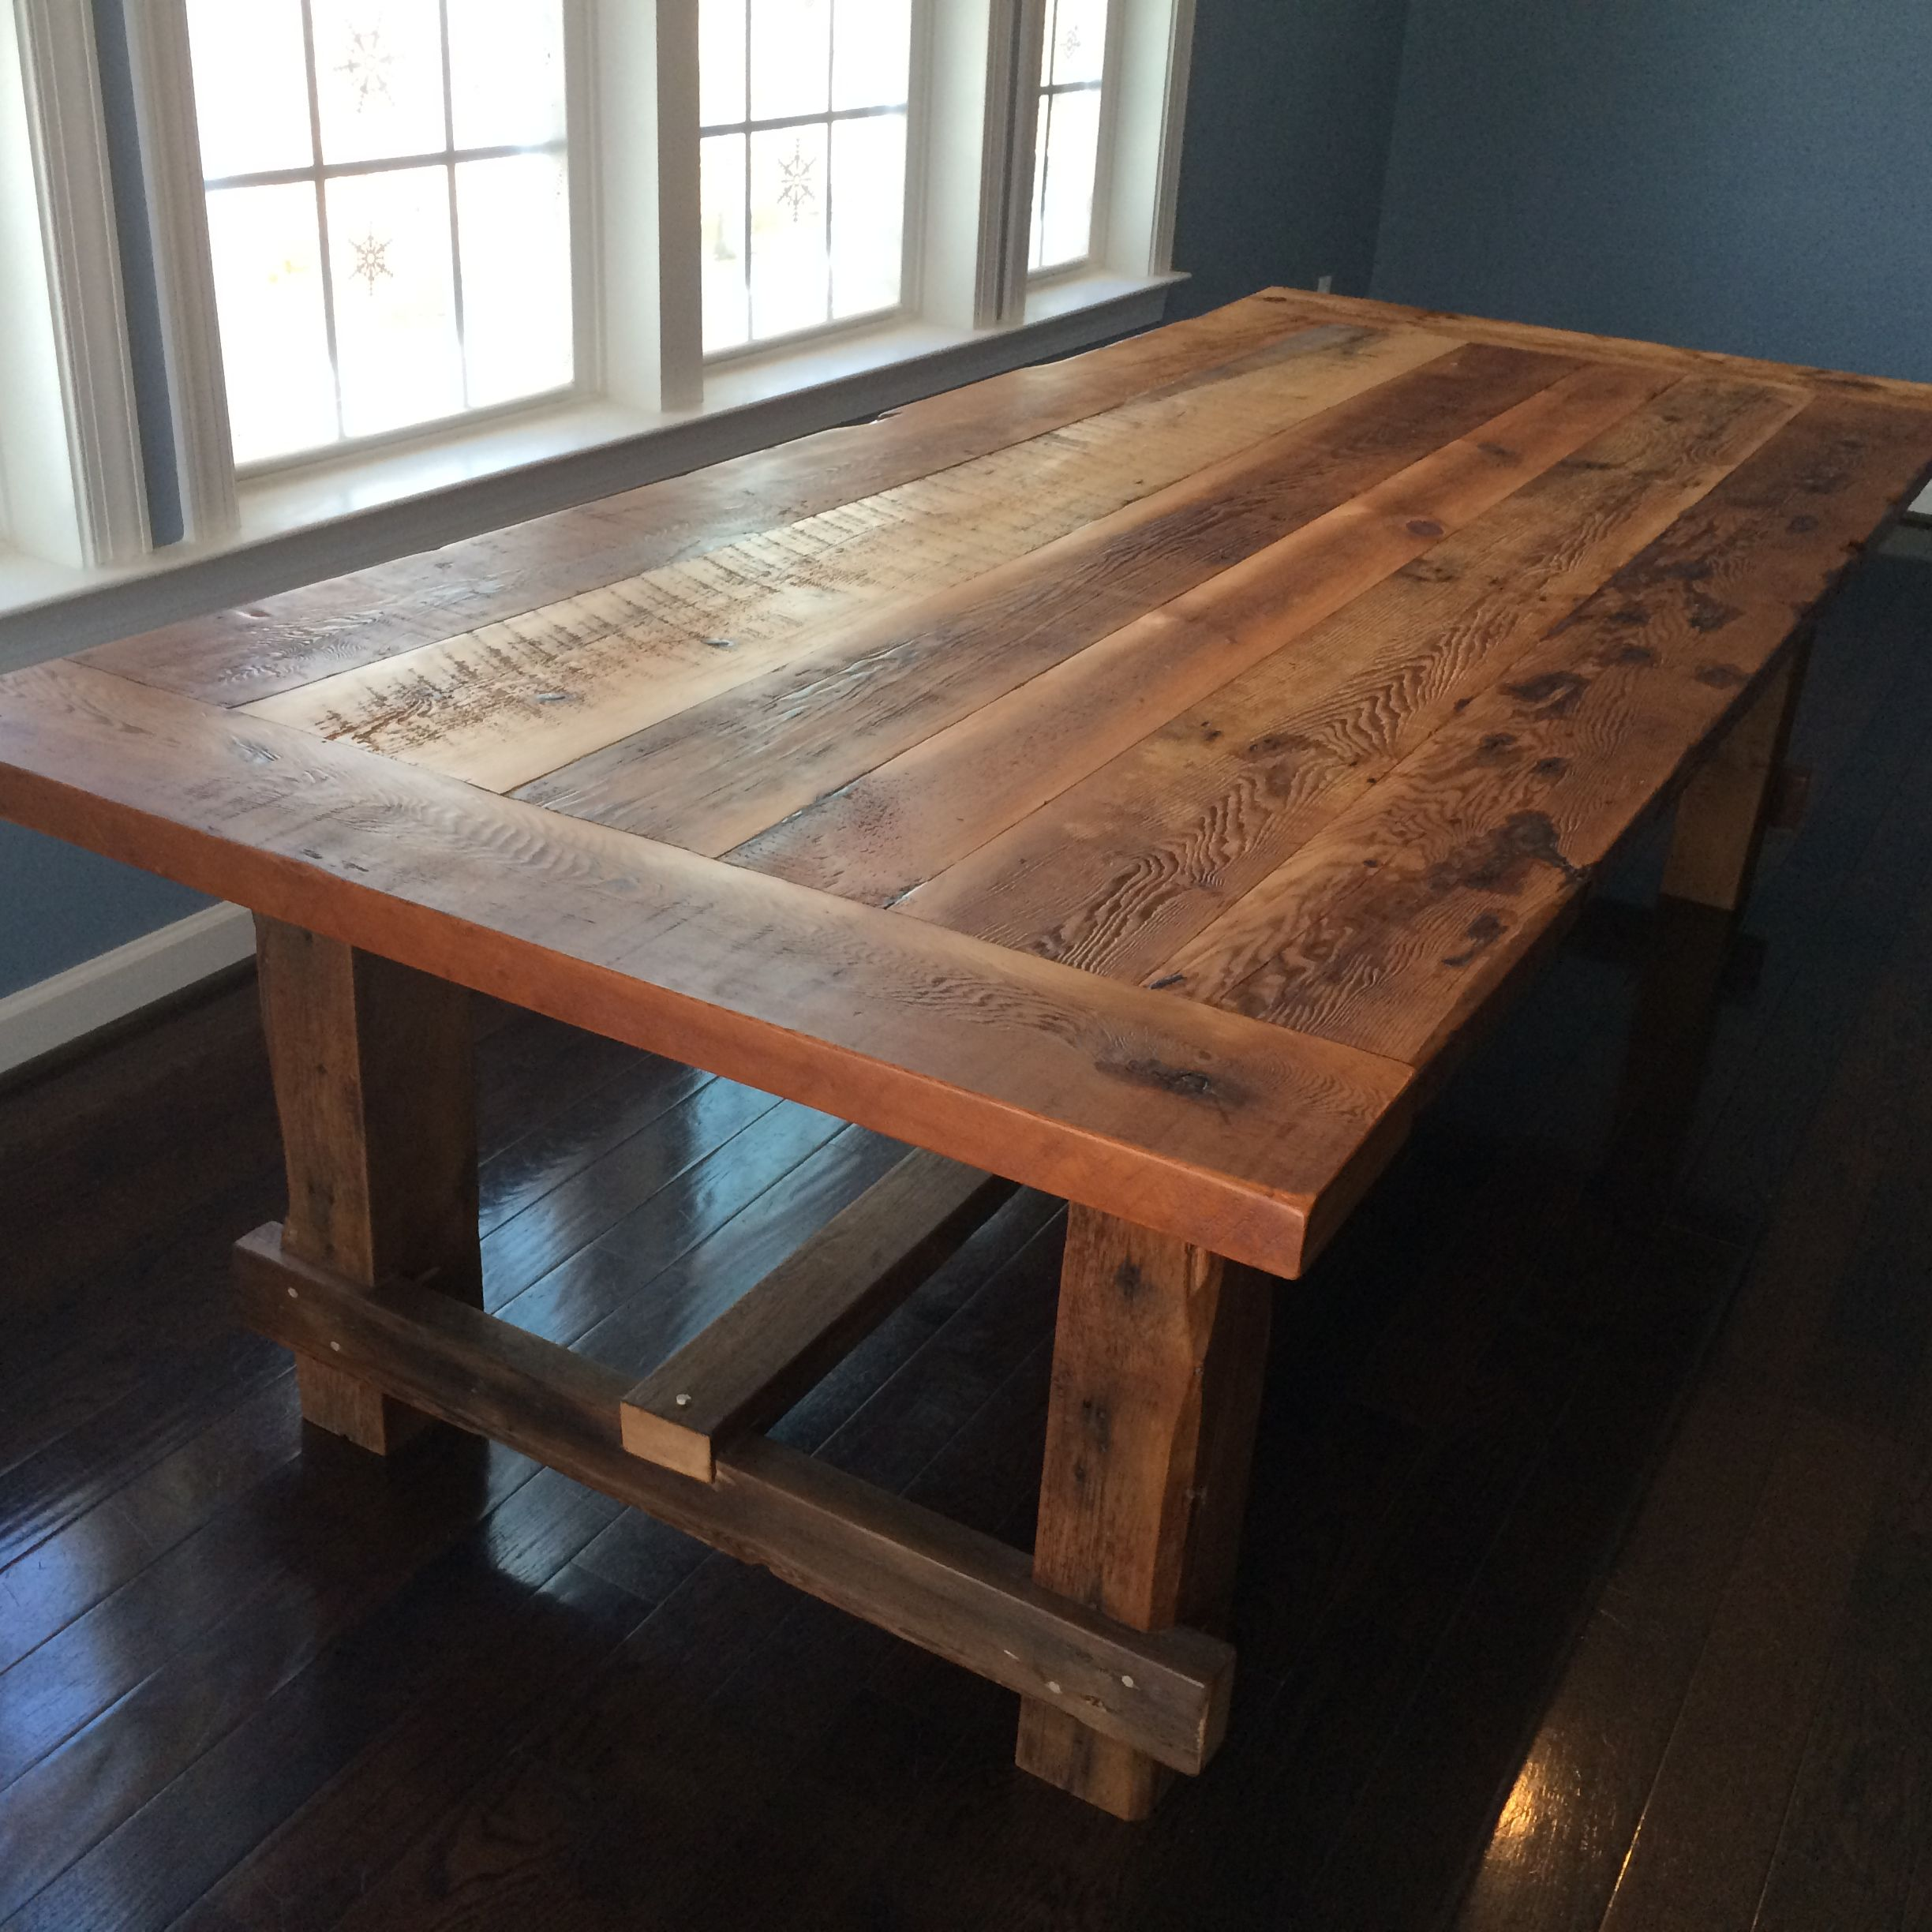 Hand Made To Order, Reclaimed Wood Farm Style Table Https://